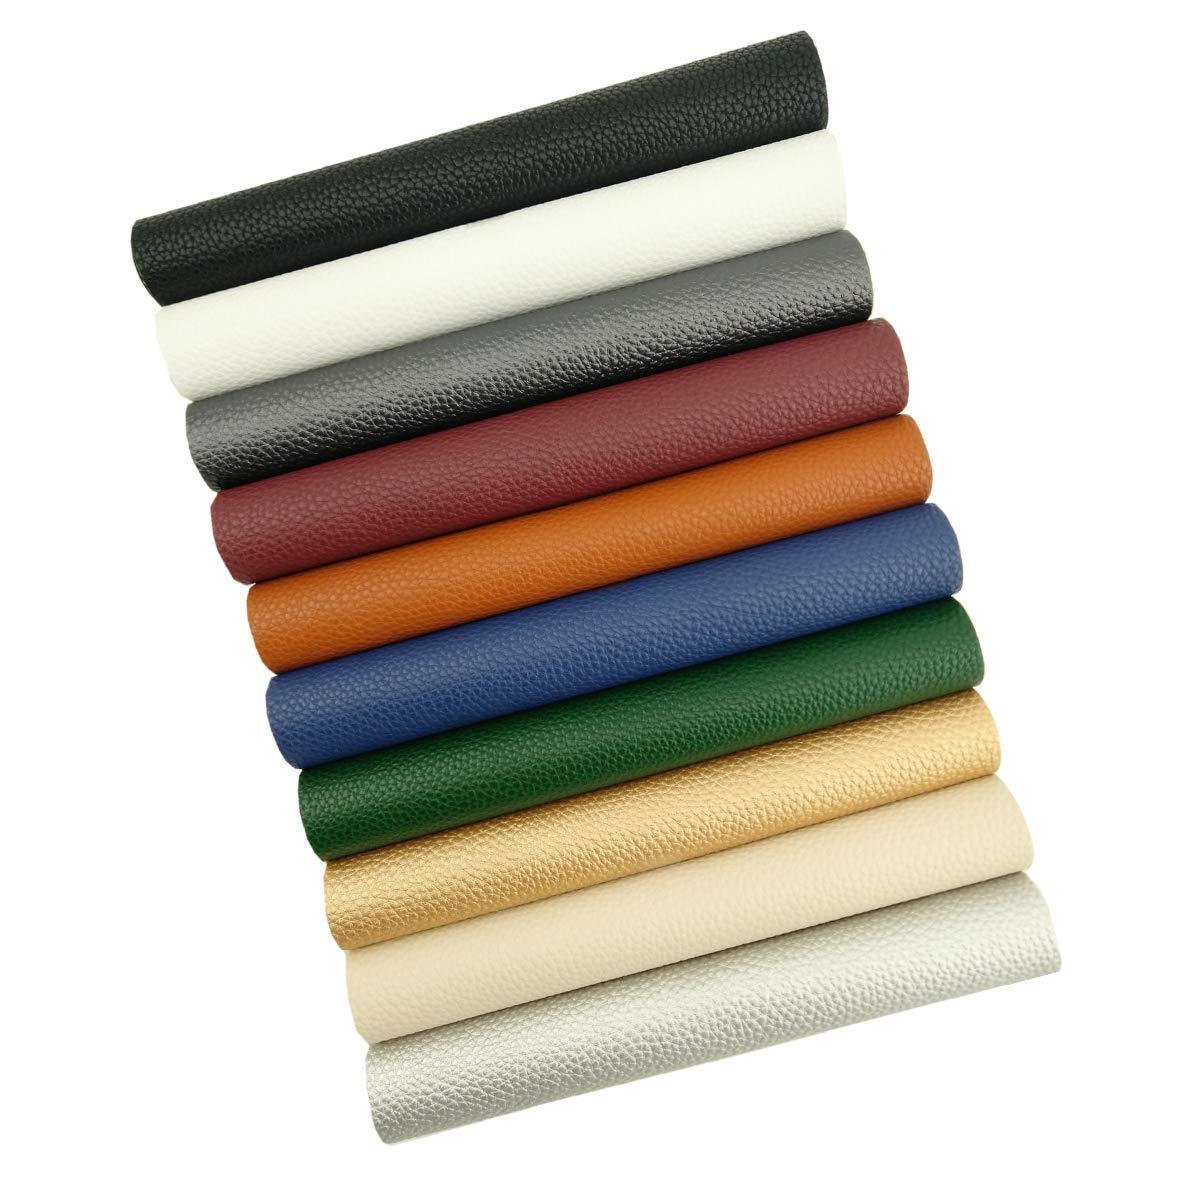 Litchi Fabric Sheets【10 Pcs】Solid Color PU Faux Leather 【8'' x 12'' 】A4 Size Perfect for Making Creative Hand Bags/Bows/Earrings/Wallets Craft DIY Sewing (Assorted Colors)